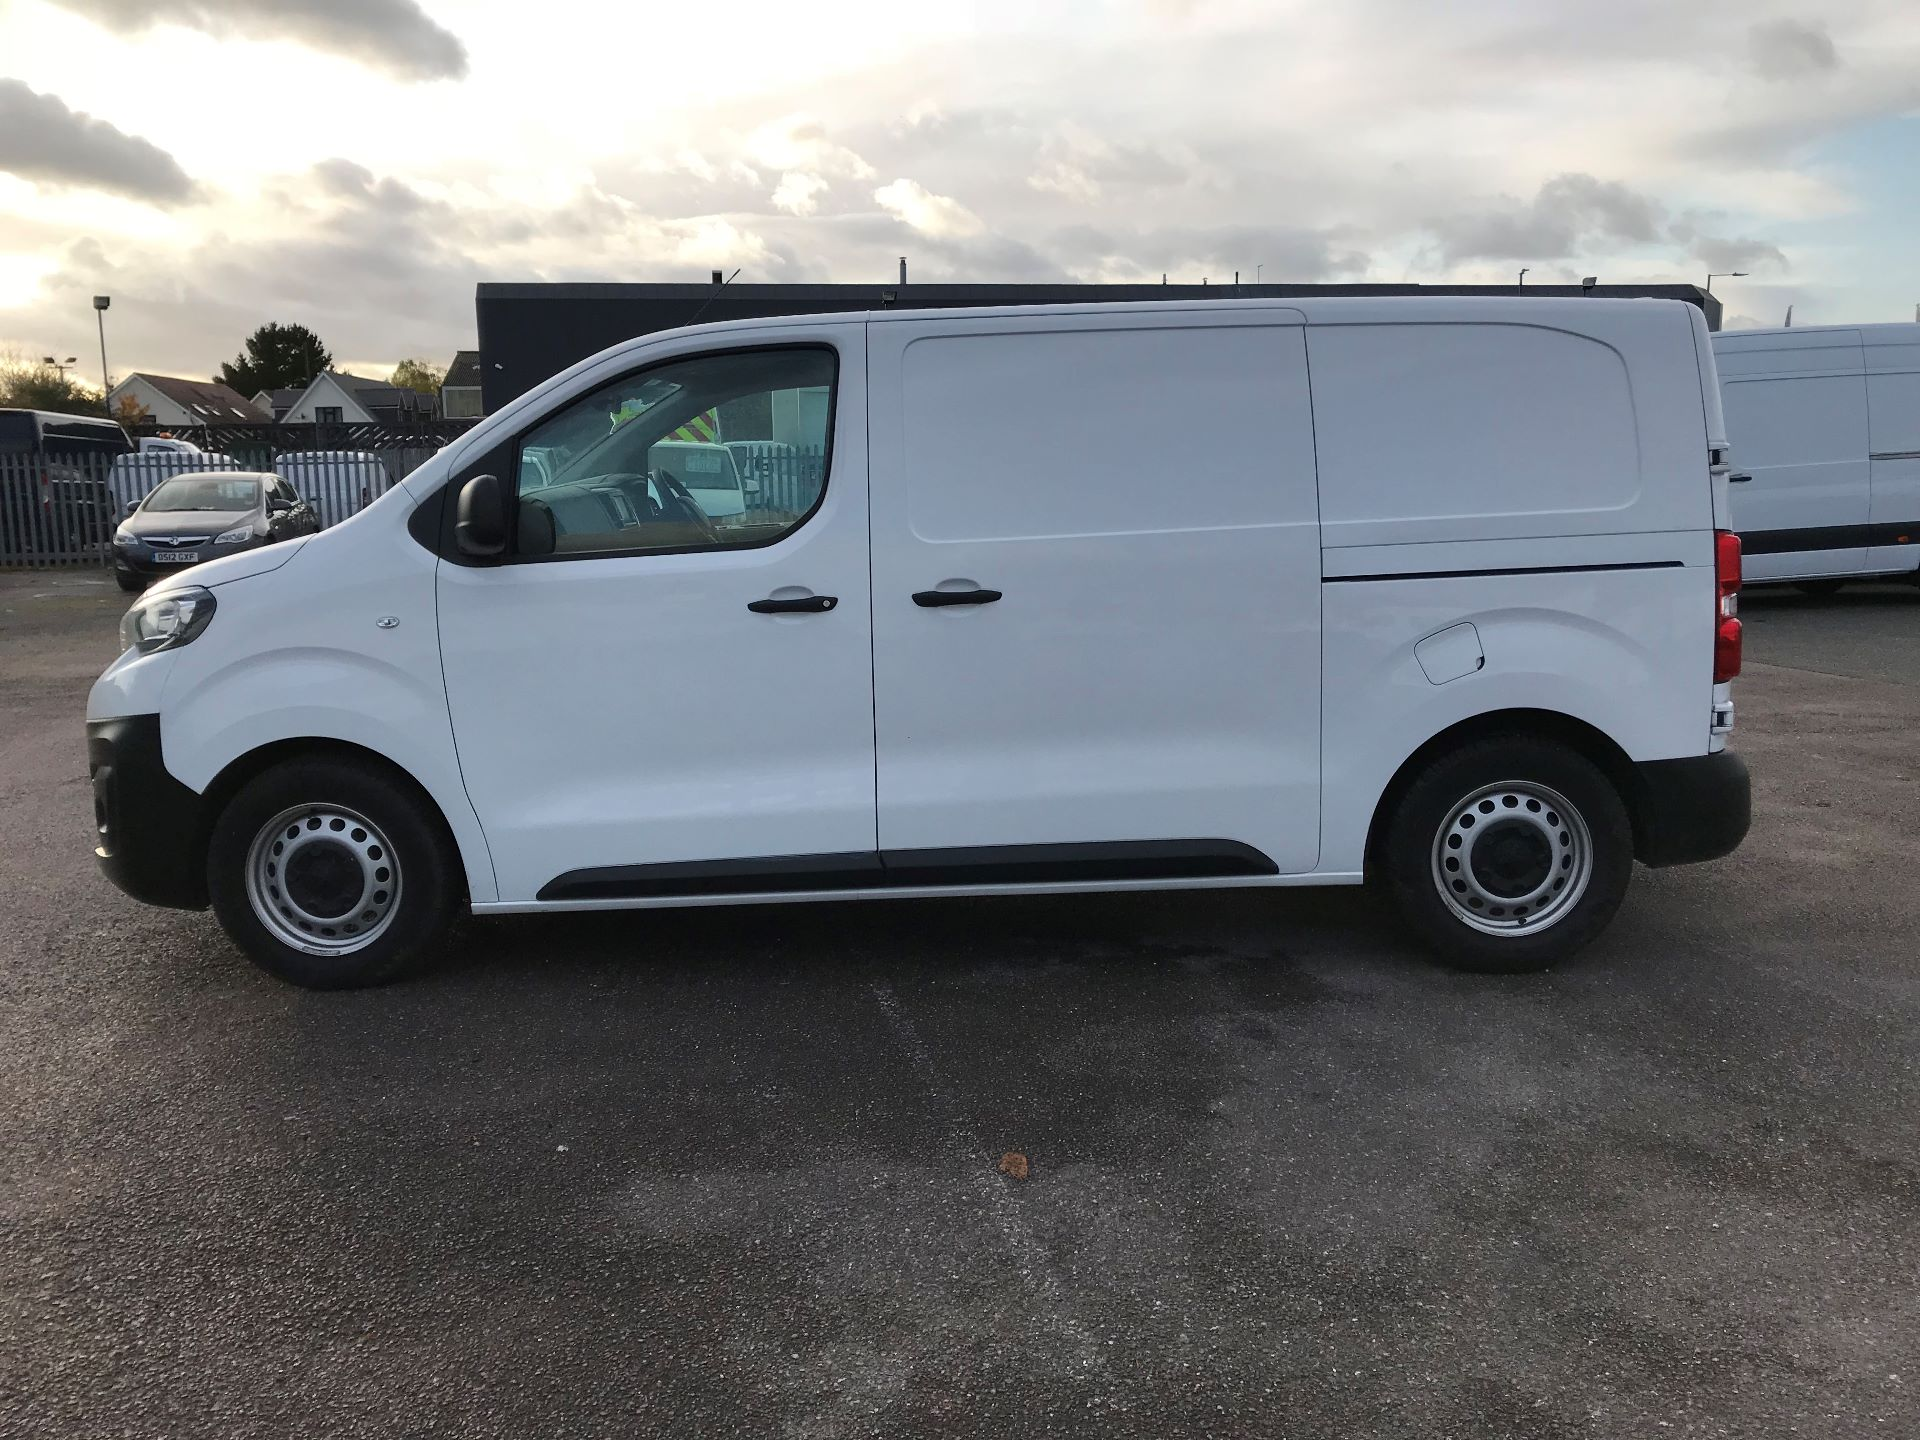 2018 Peugeot Expert   STANDARD 1000 1.6 BLUEHDI 95 PROFFESSIONAL EURO 6 (NU68BFP) Image 10